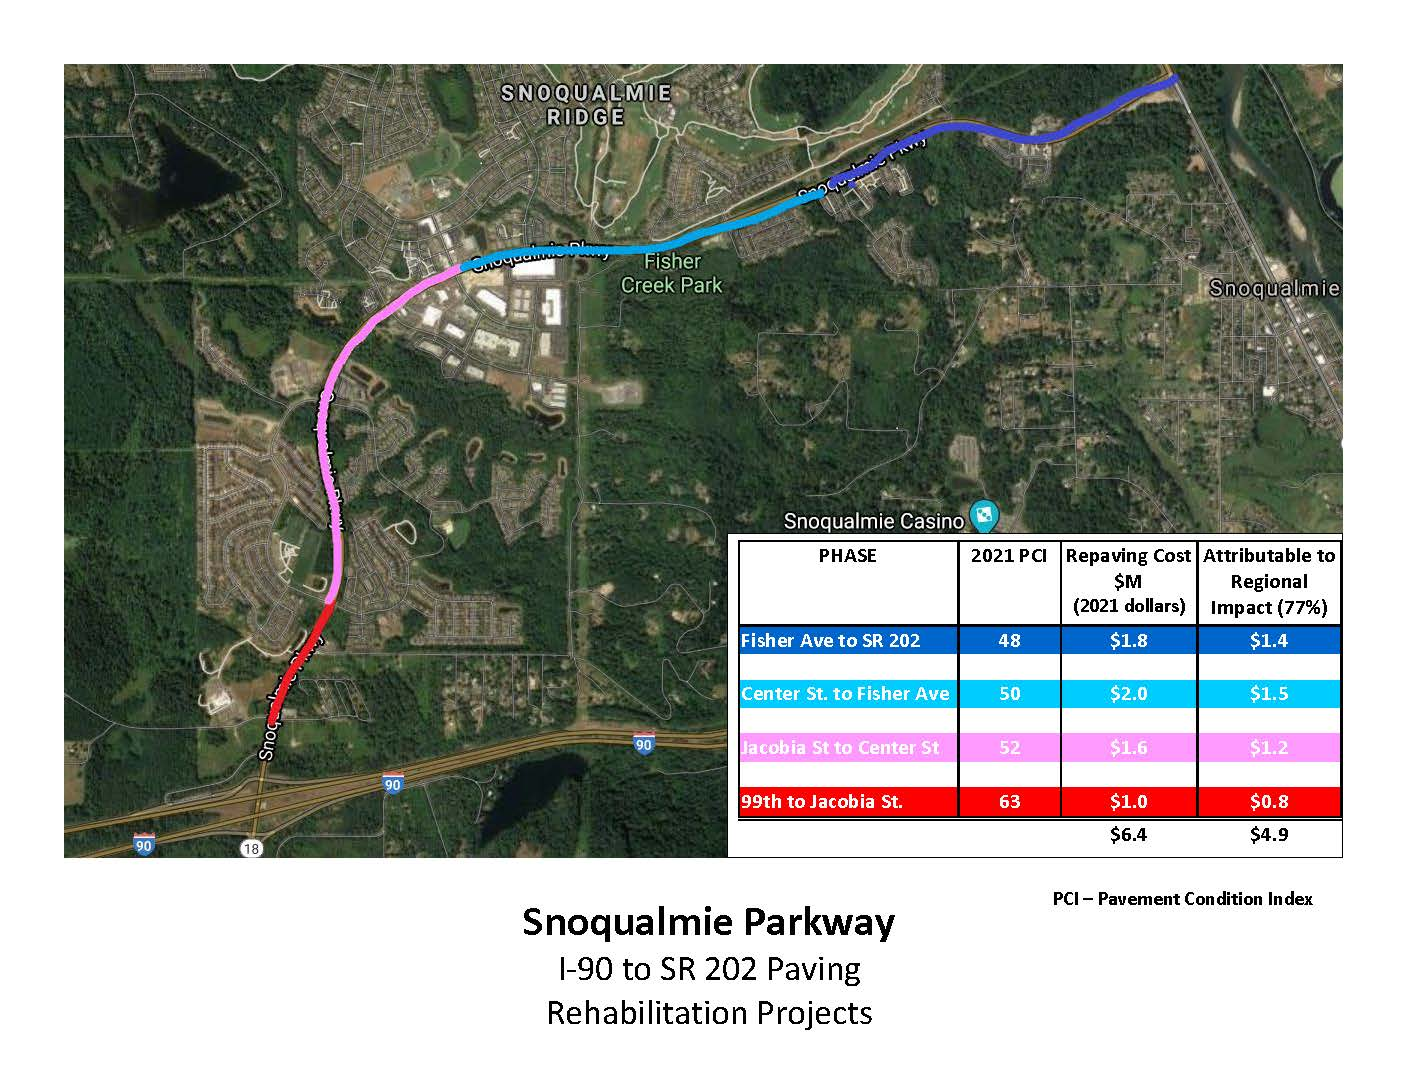 This is an aerial map of the Snoqualmie Parkway Pavement Rehabilitation Plan.